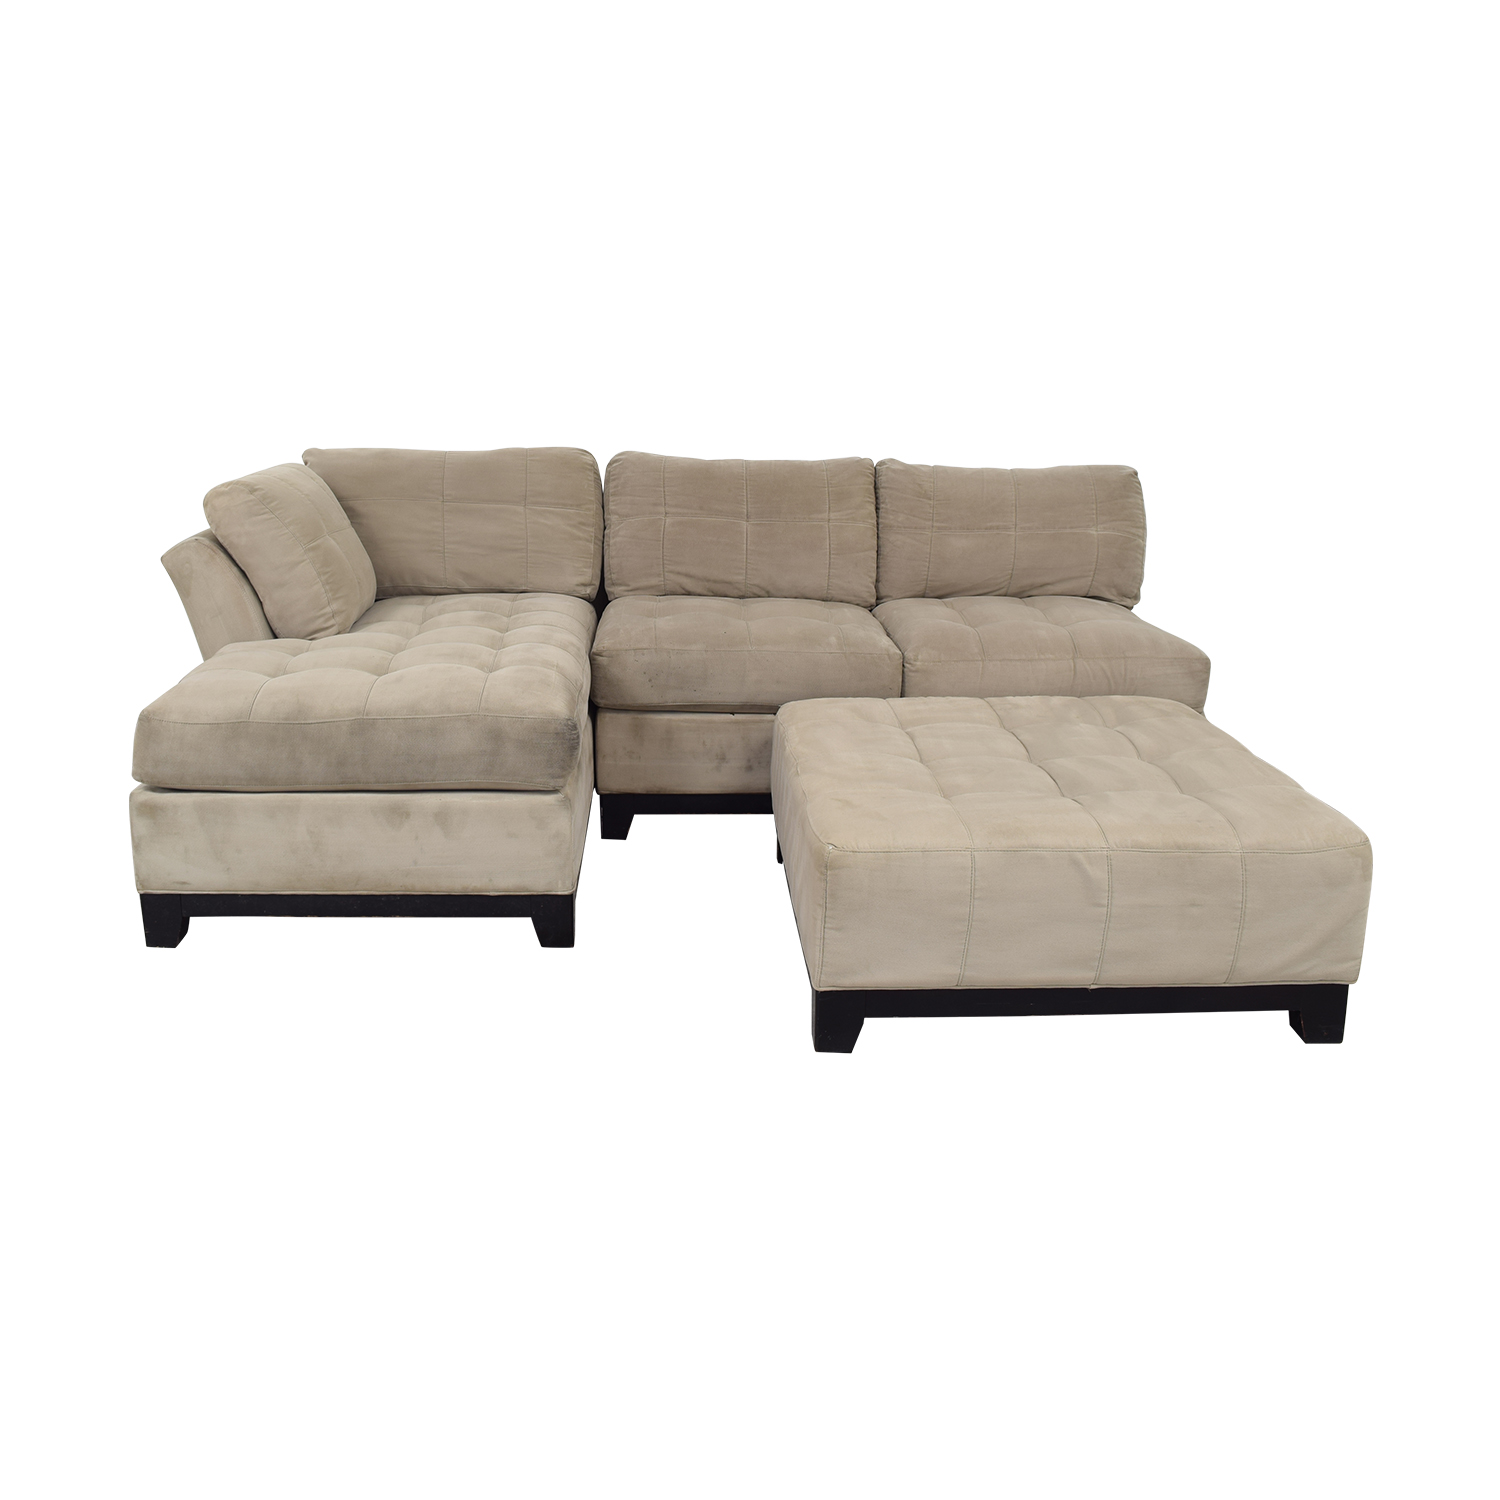 Cindy Crawford Home Cindy Crawford Home Microfiber Sectional with Ottoman second hand